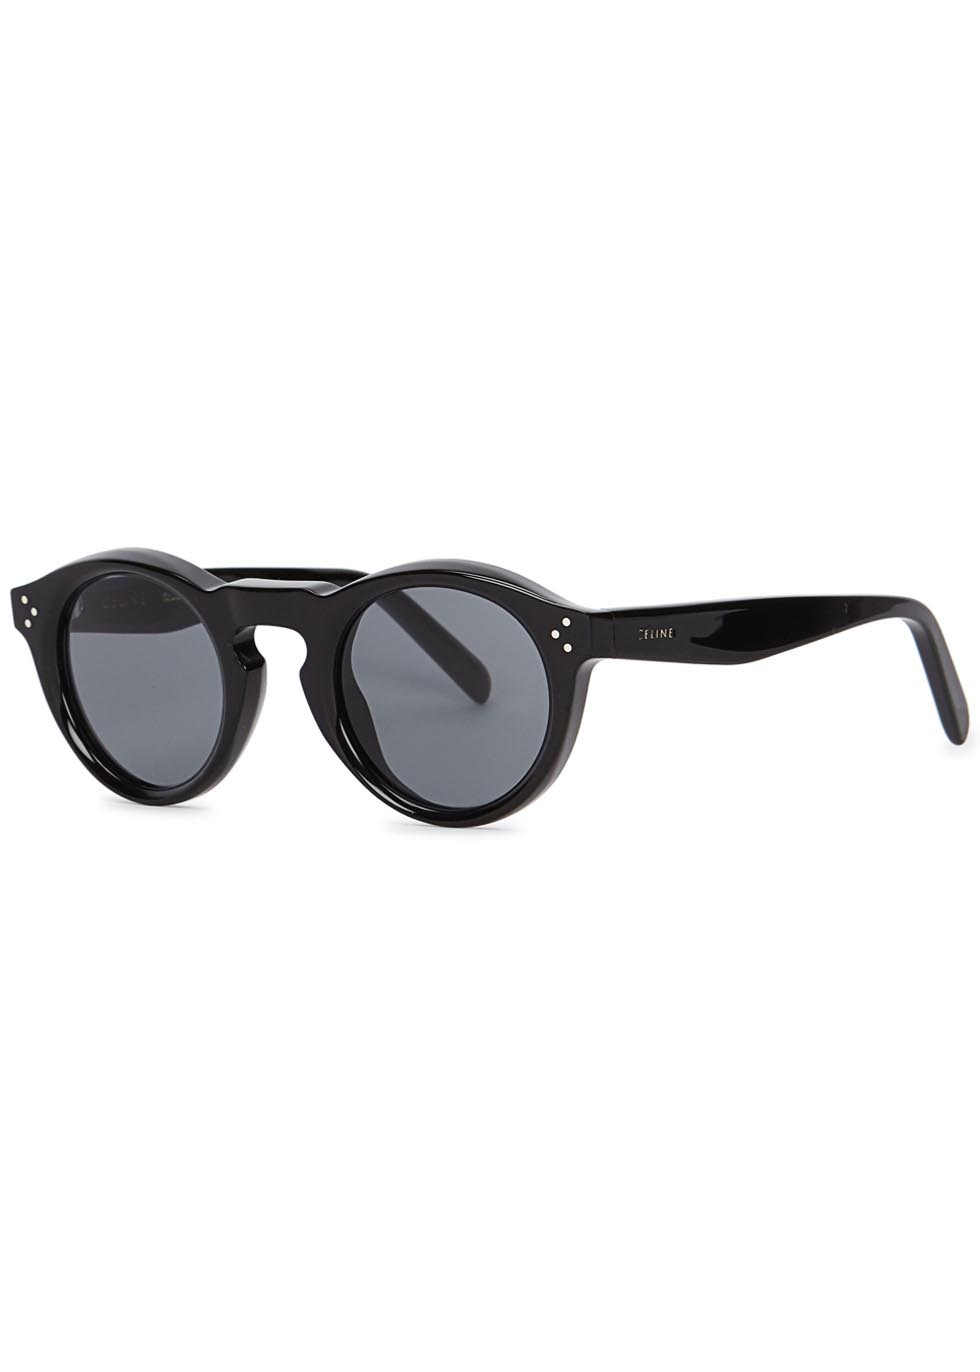 Bevel black round-frame sunglasses - Celine